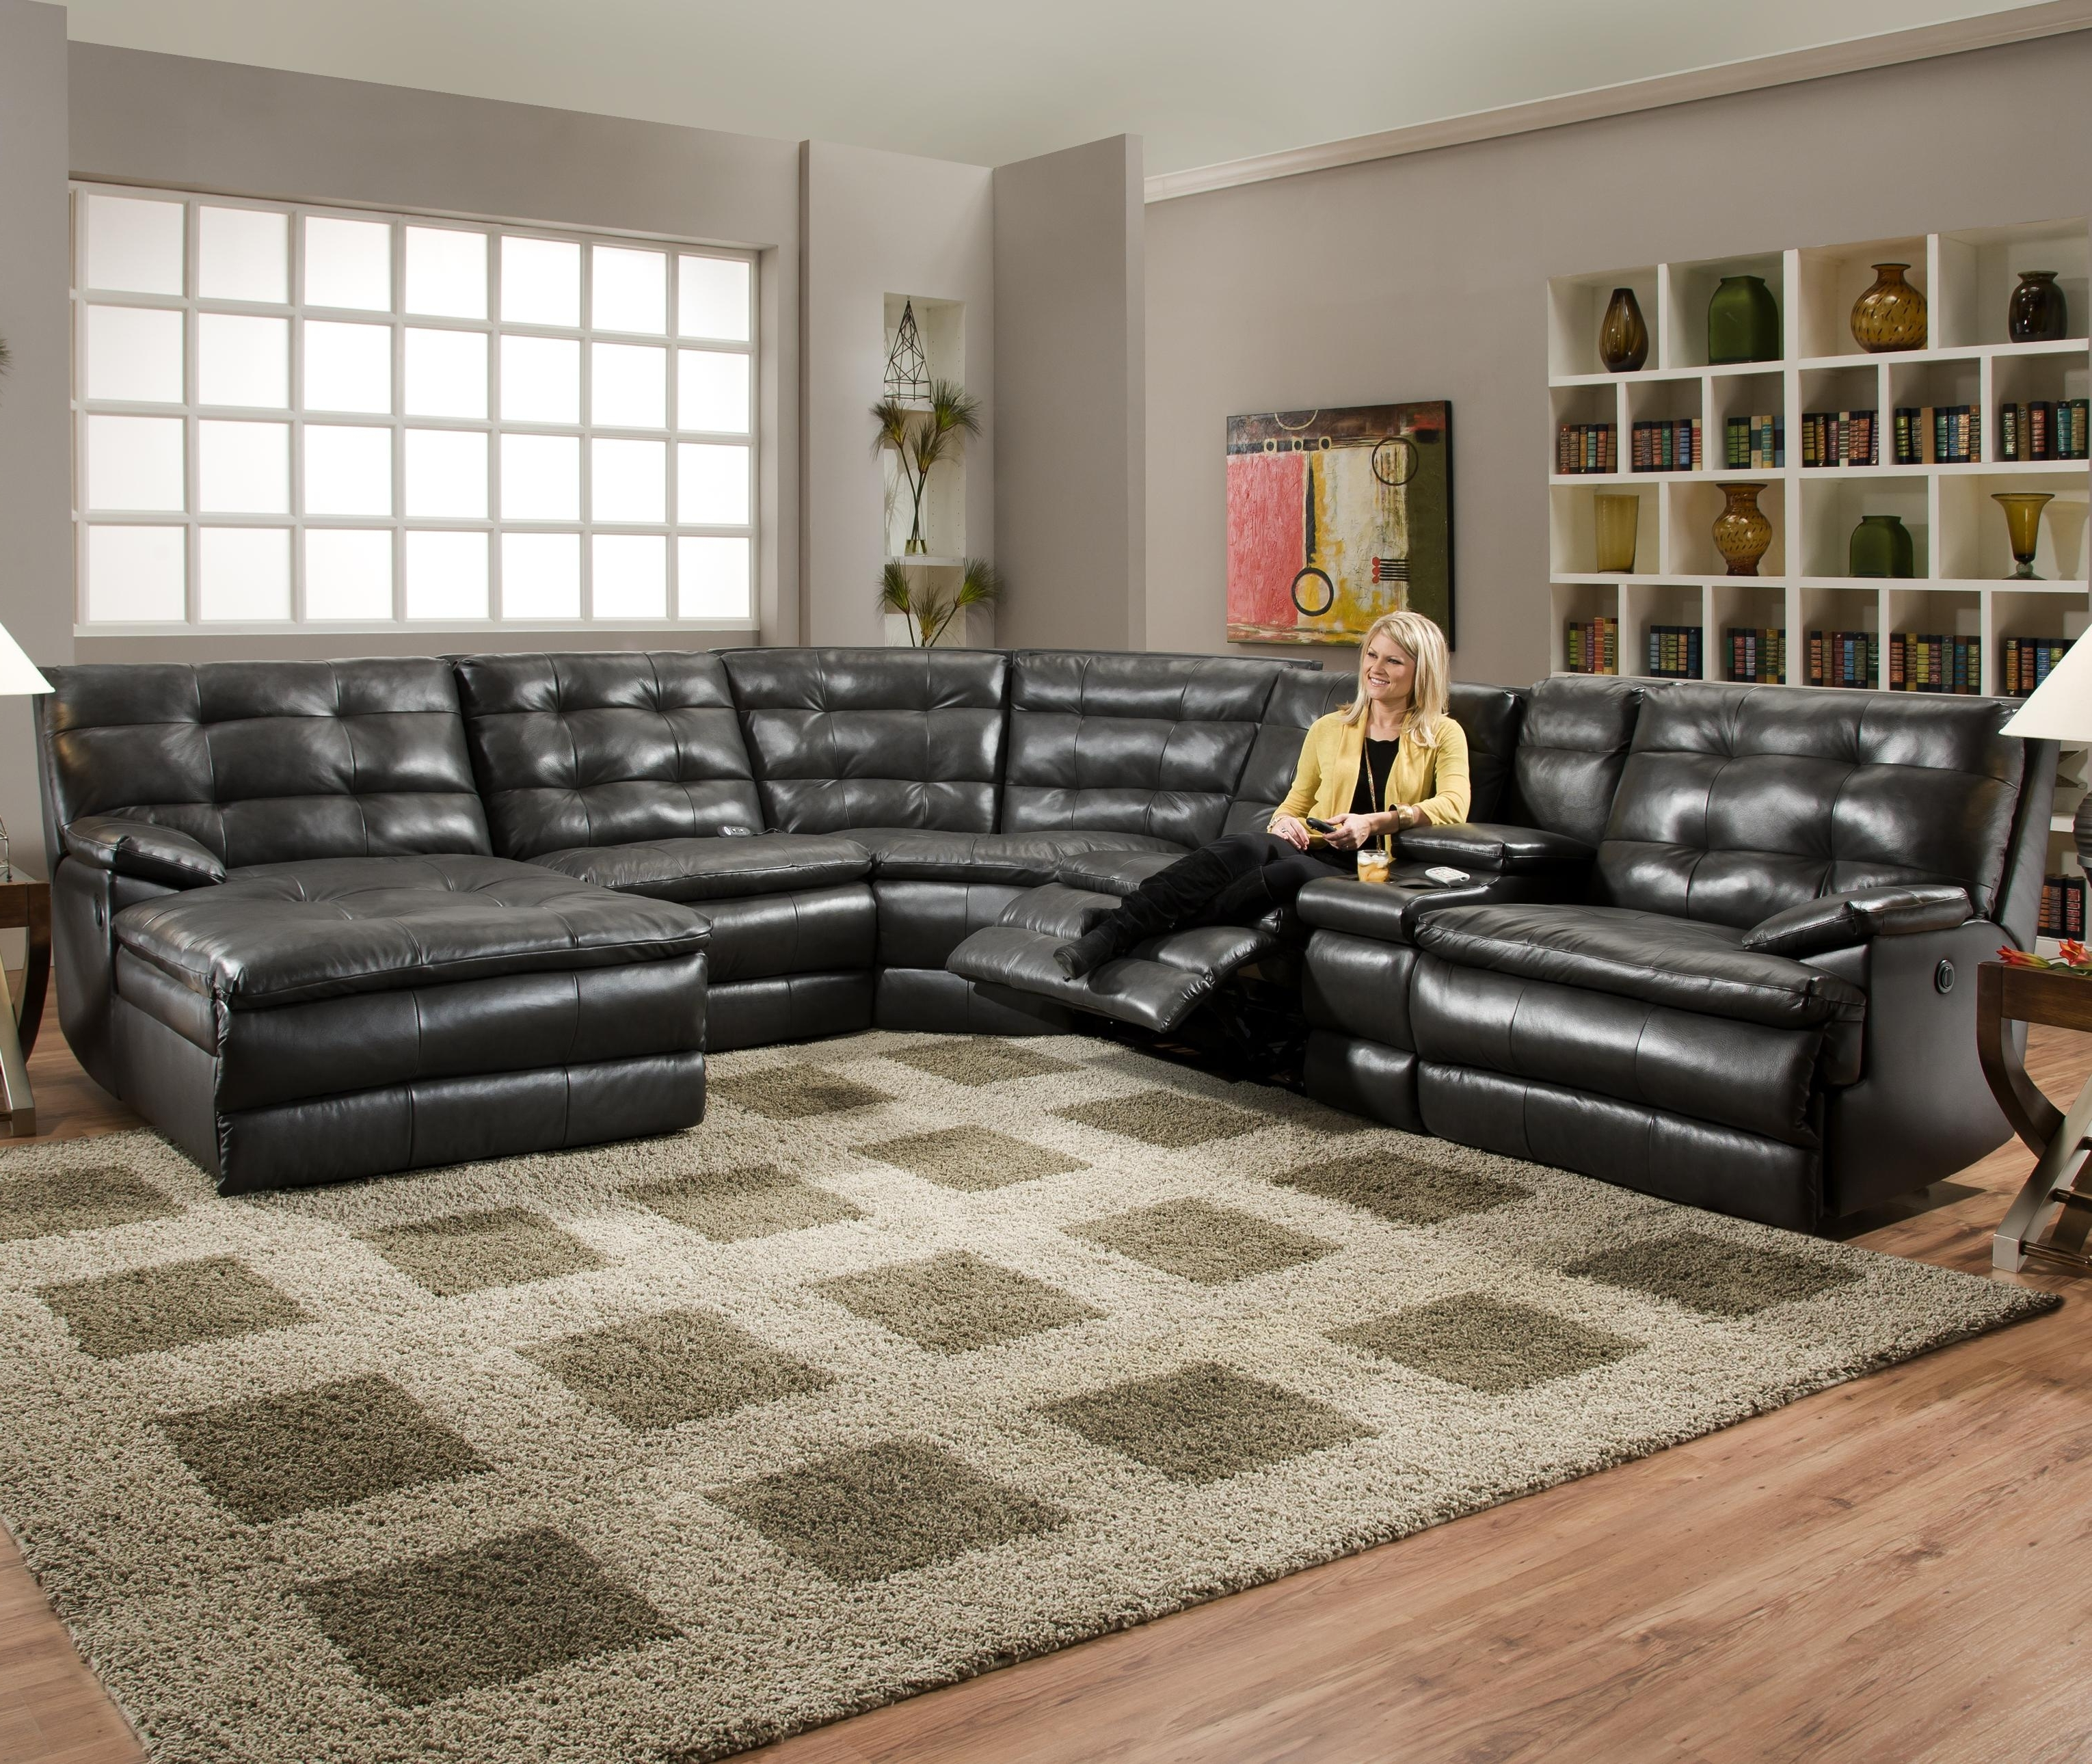 Newest Tufted Sectionals With Chaise In Luxurious Tufted Leather Sectional Sofa In Classy Black Color With (View 13 of 15)